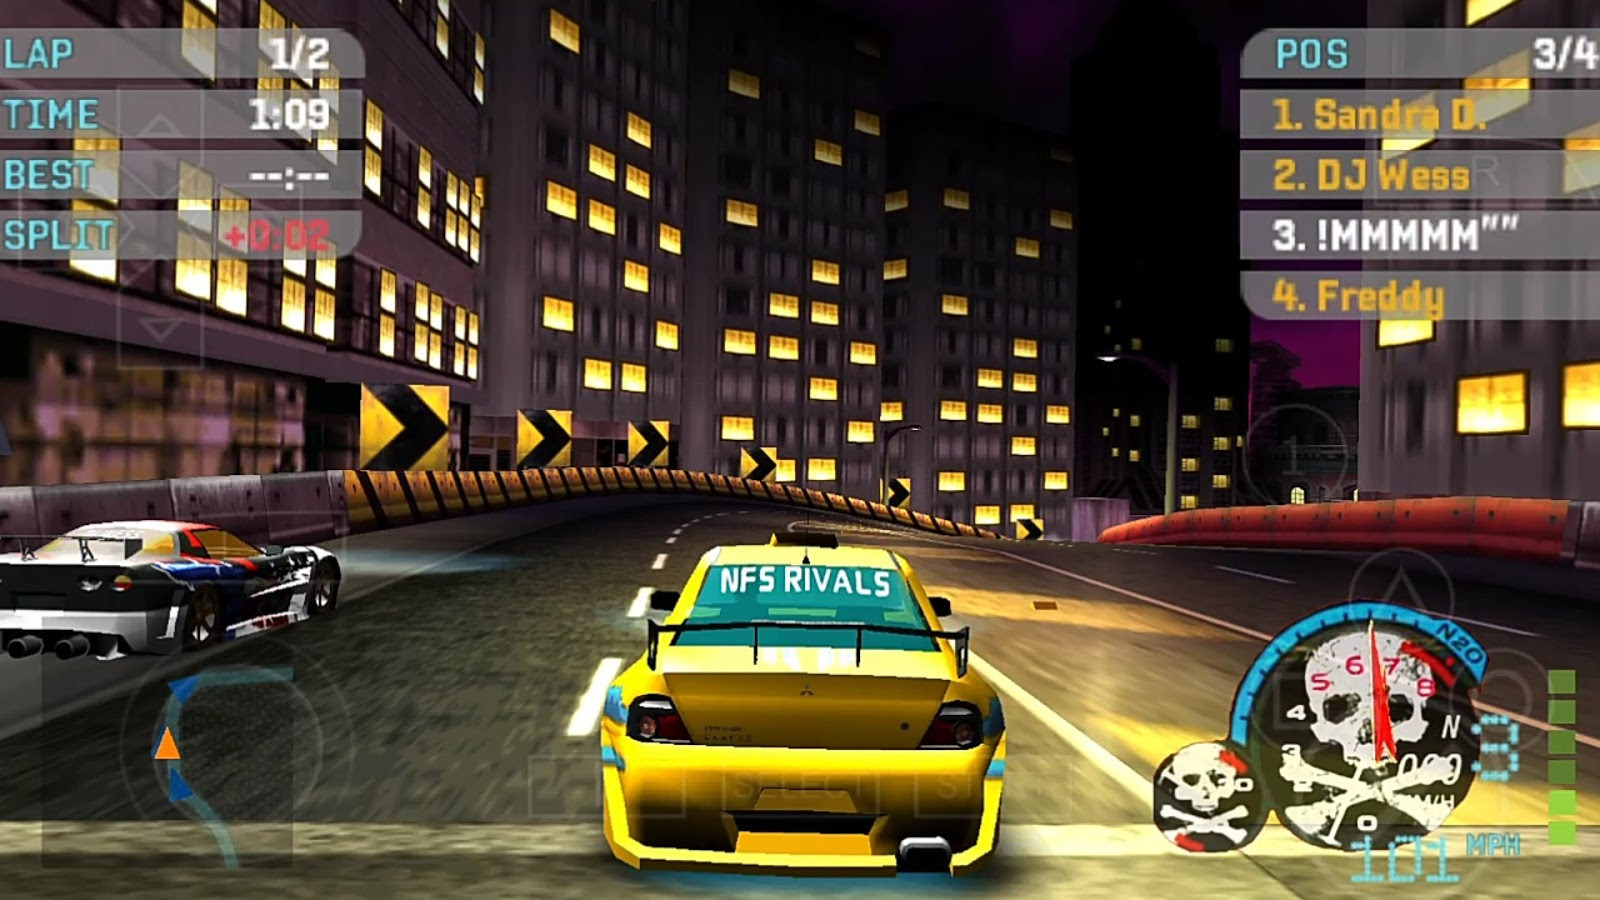 SAIU! Need For Speed Underground 2 LITE 98Mb MOD Para PPSSPP | ANDROID (+DOWNLOAD)